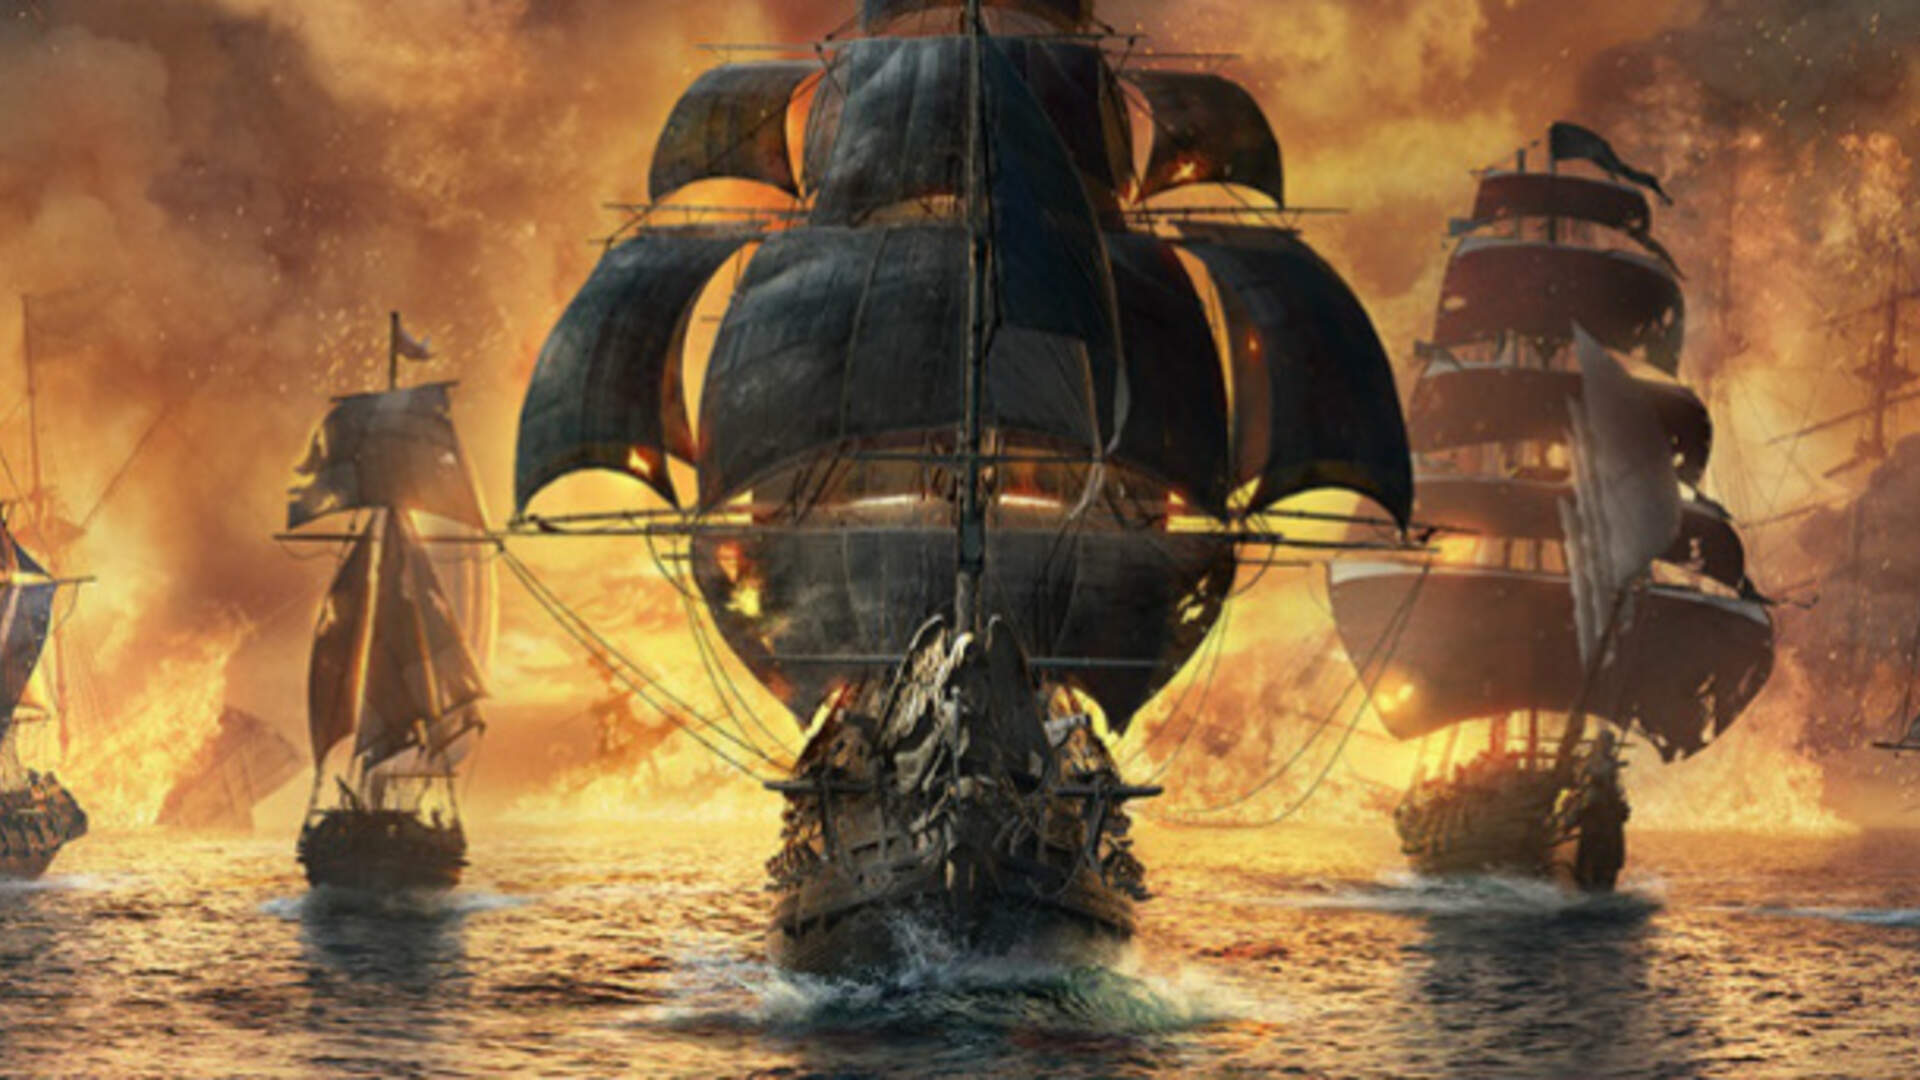 Skull & Bones Isn't The Black Flag Sequel You're Looking For, But It's Competitive Fun